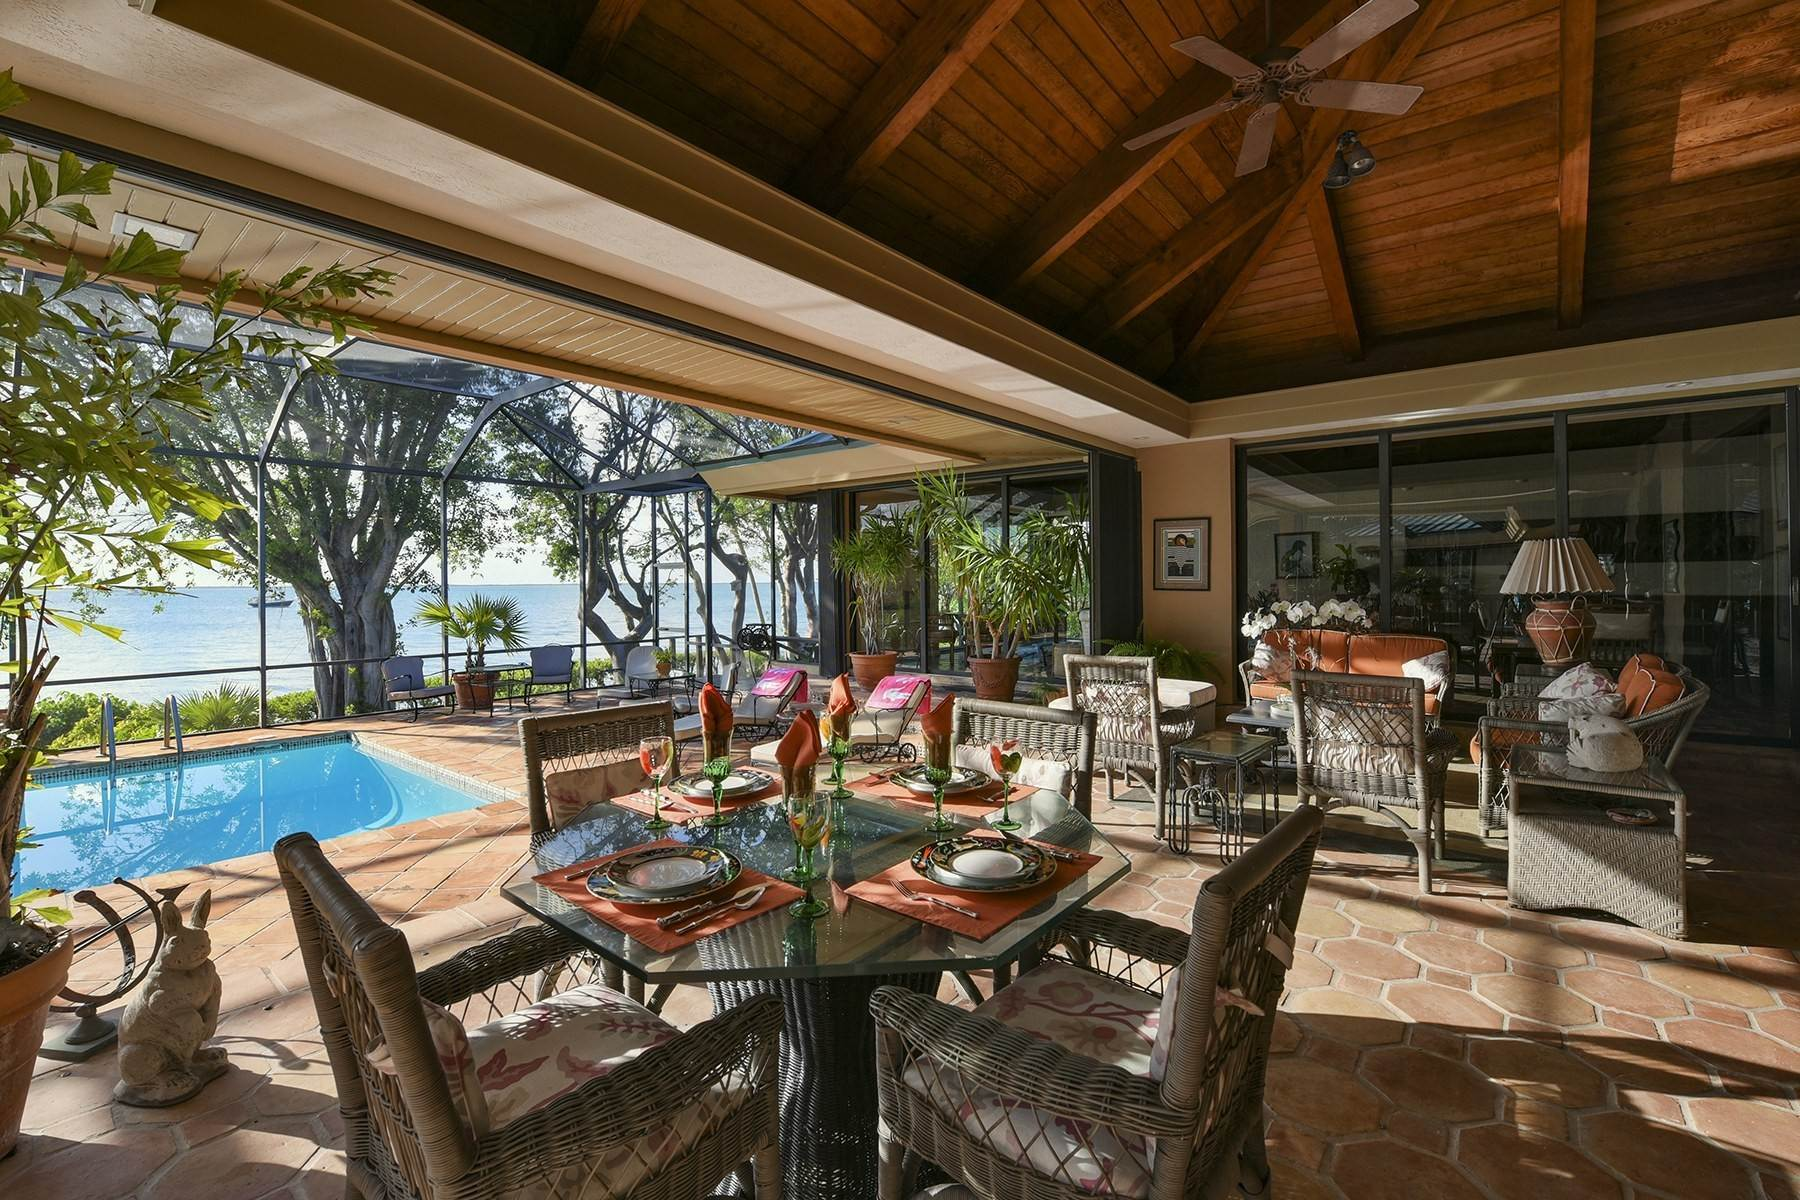 17. Property for Sale at 10 Cannon Point, Key Largo, FL Key Largo, Florida 33037 United States